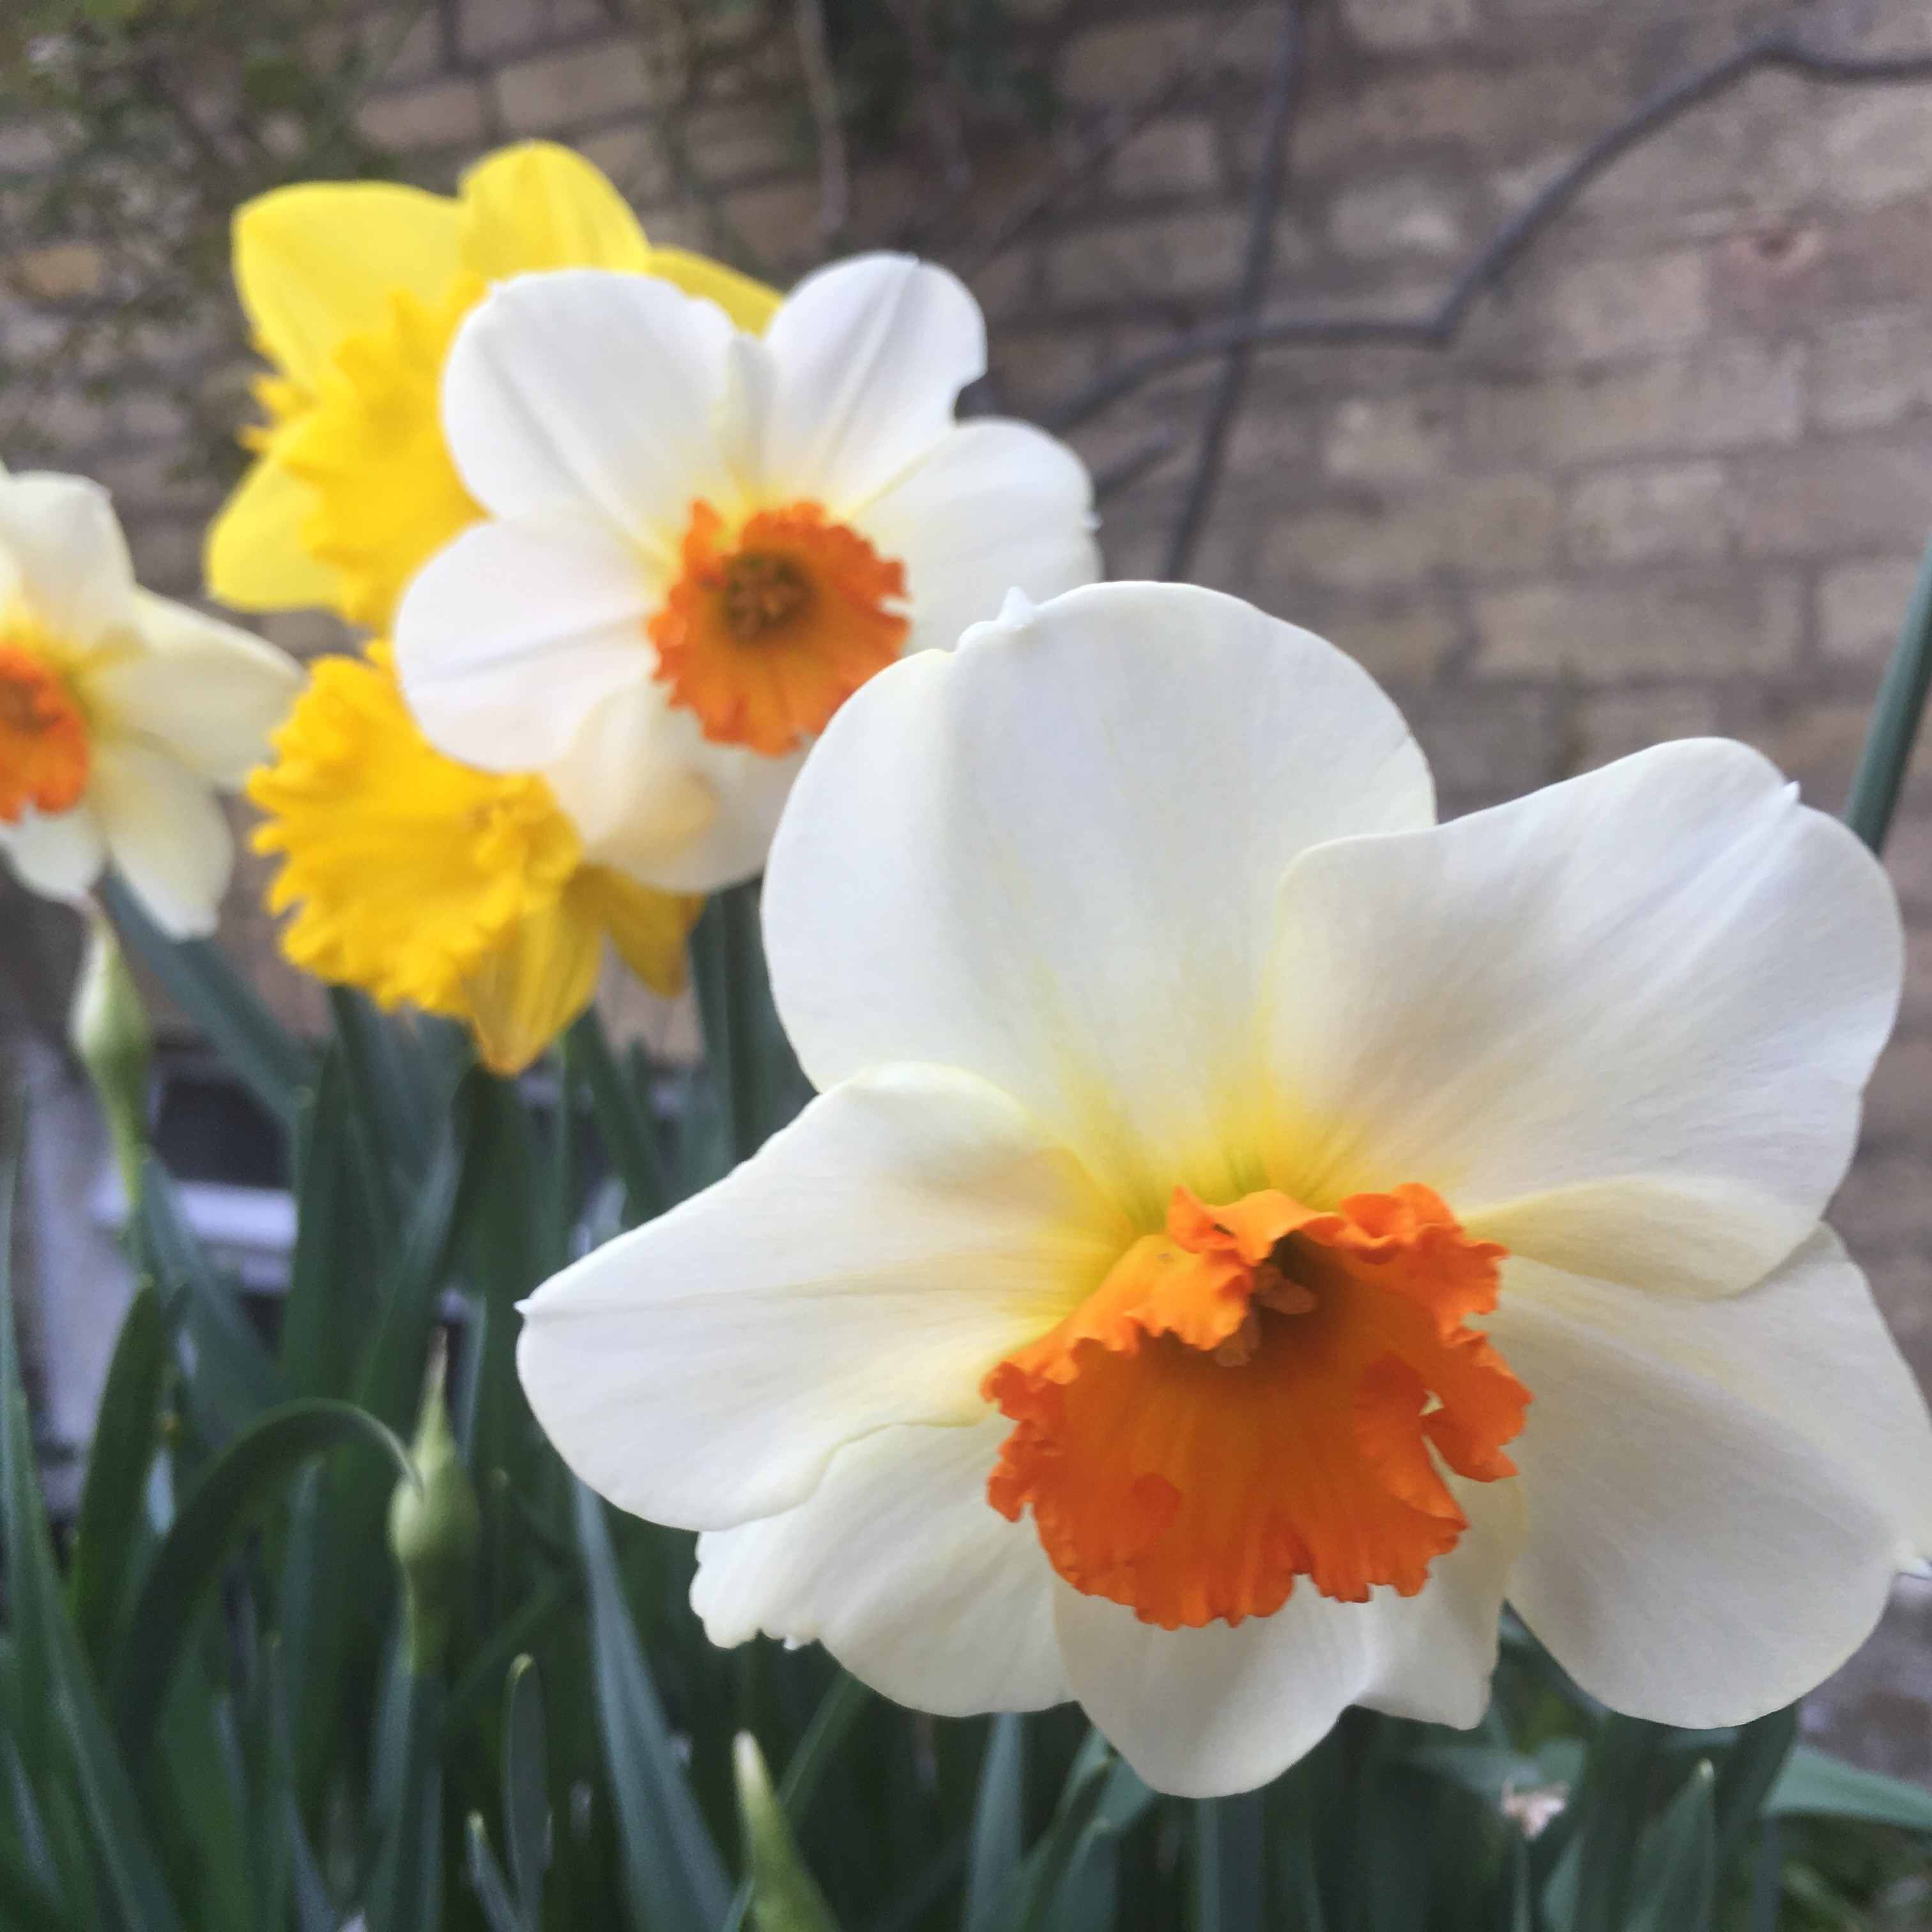 The daffs are back in town!